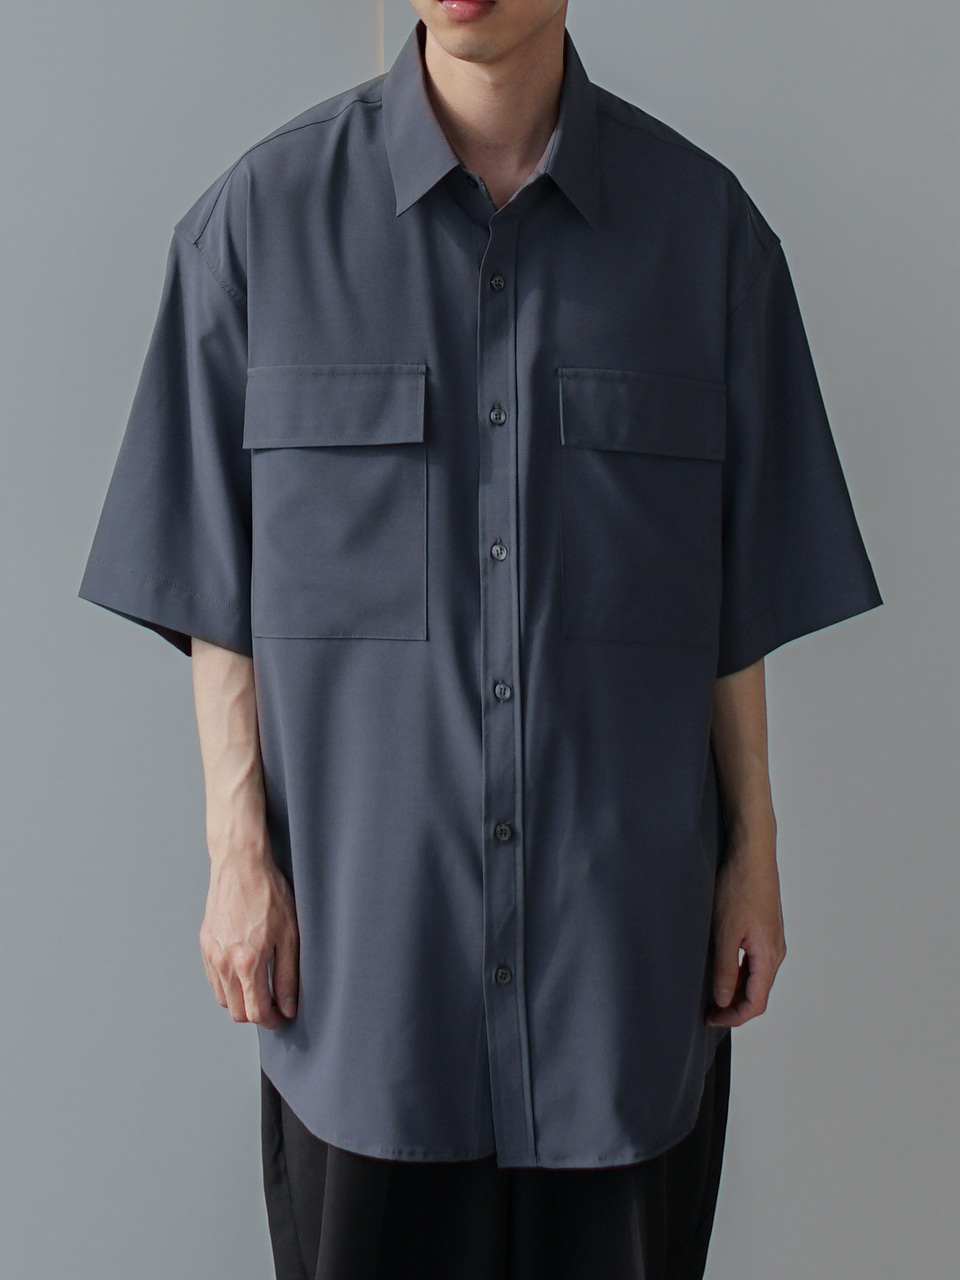 Close Pocket Half Shirt (4color)